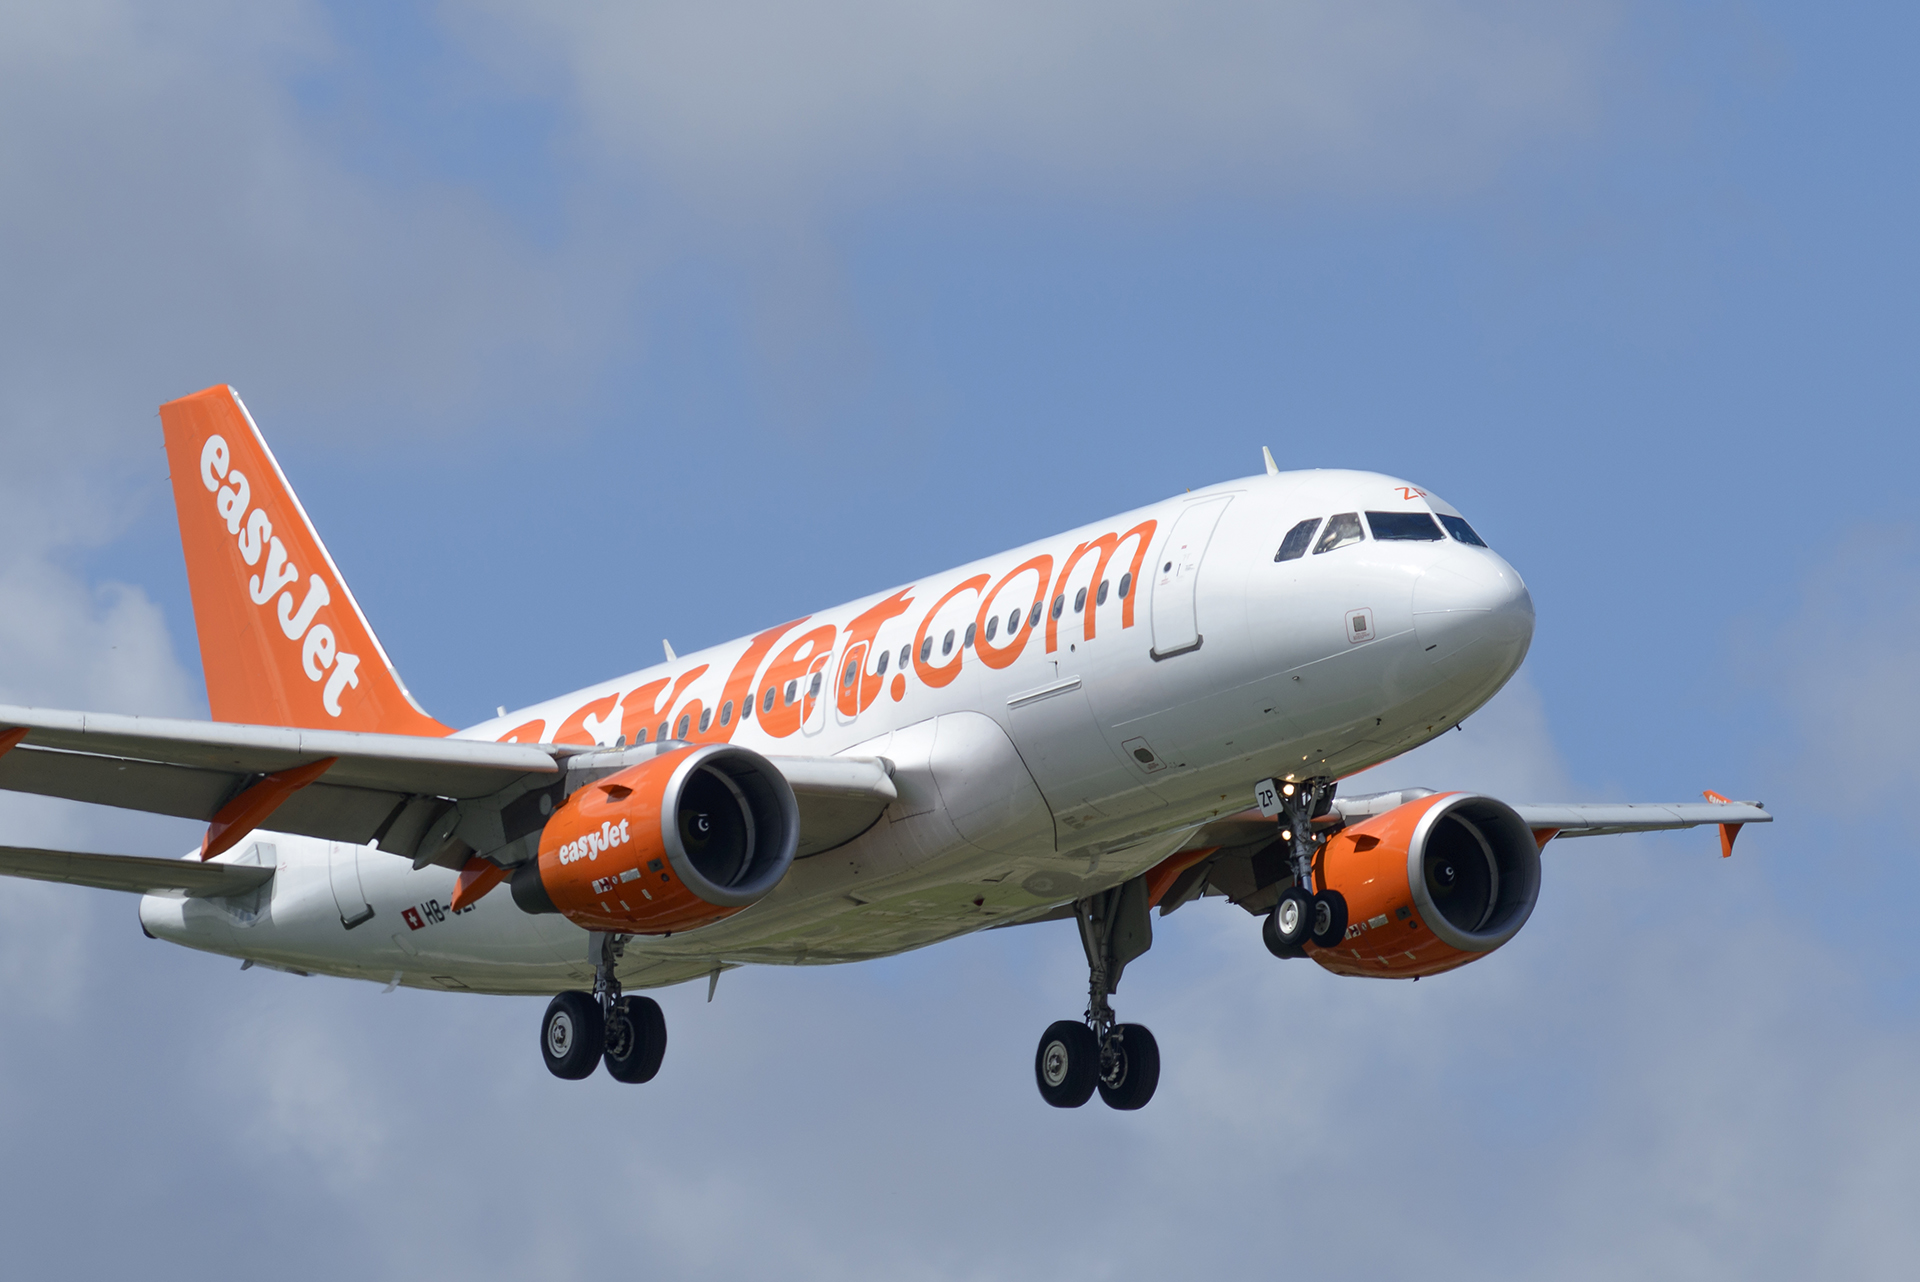 EasyJet takes A320neo fitted for future ATC system trial